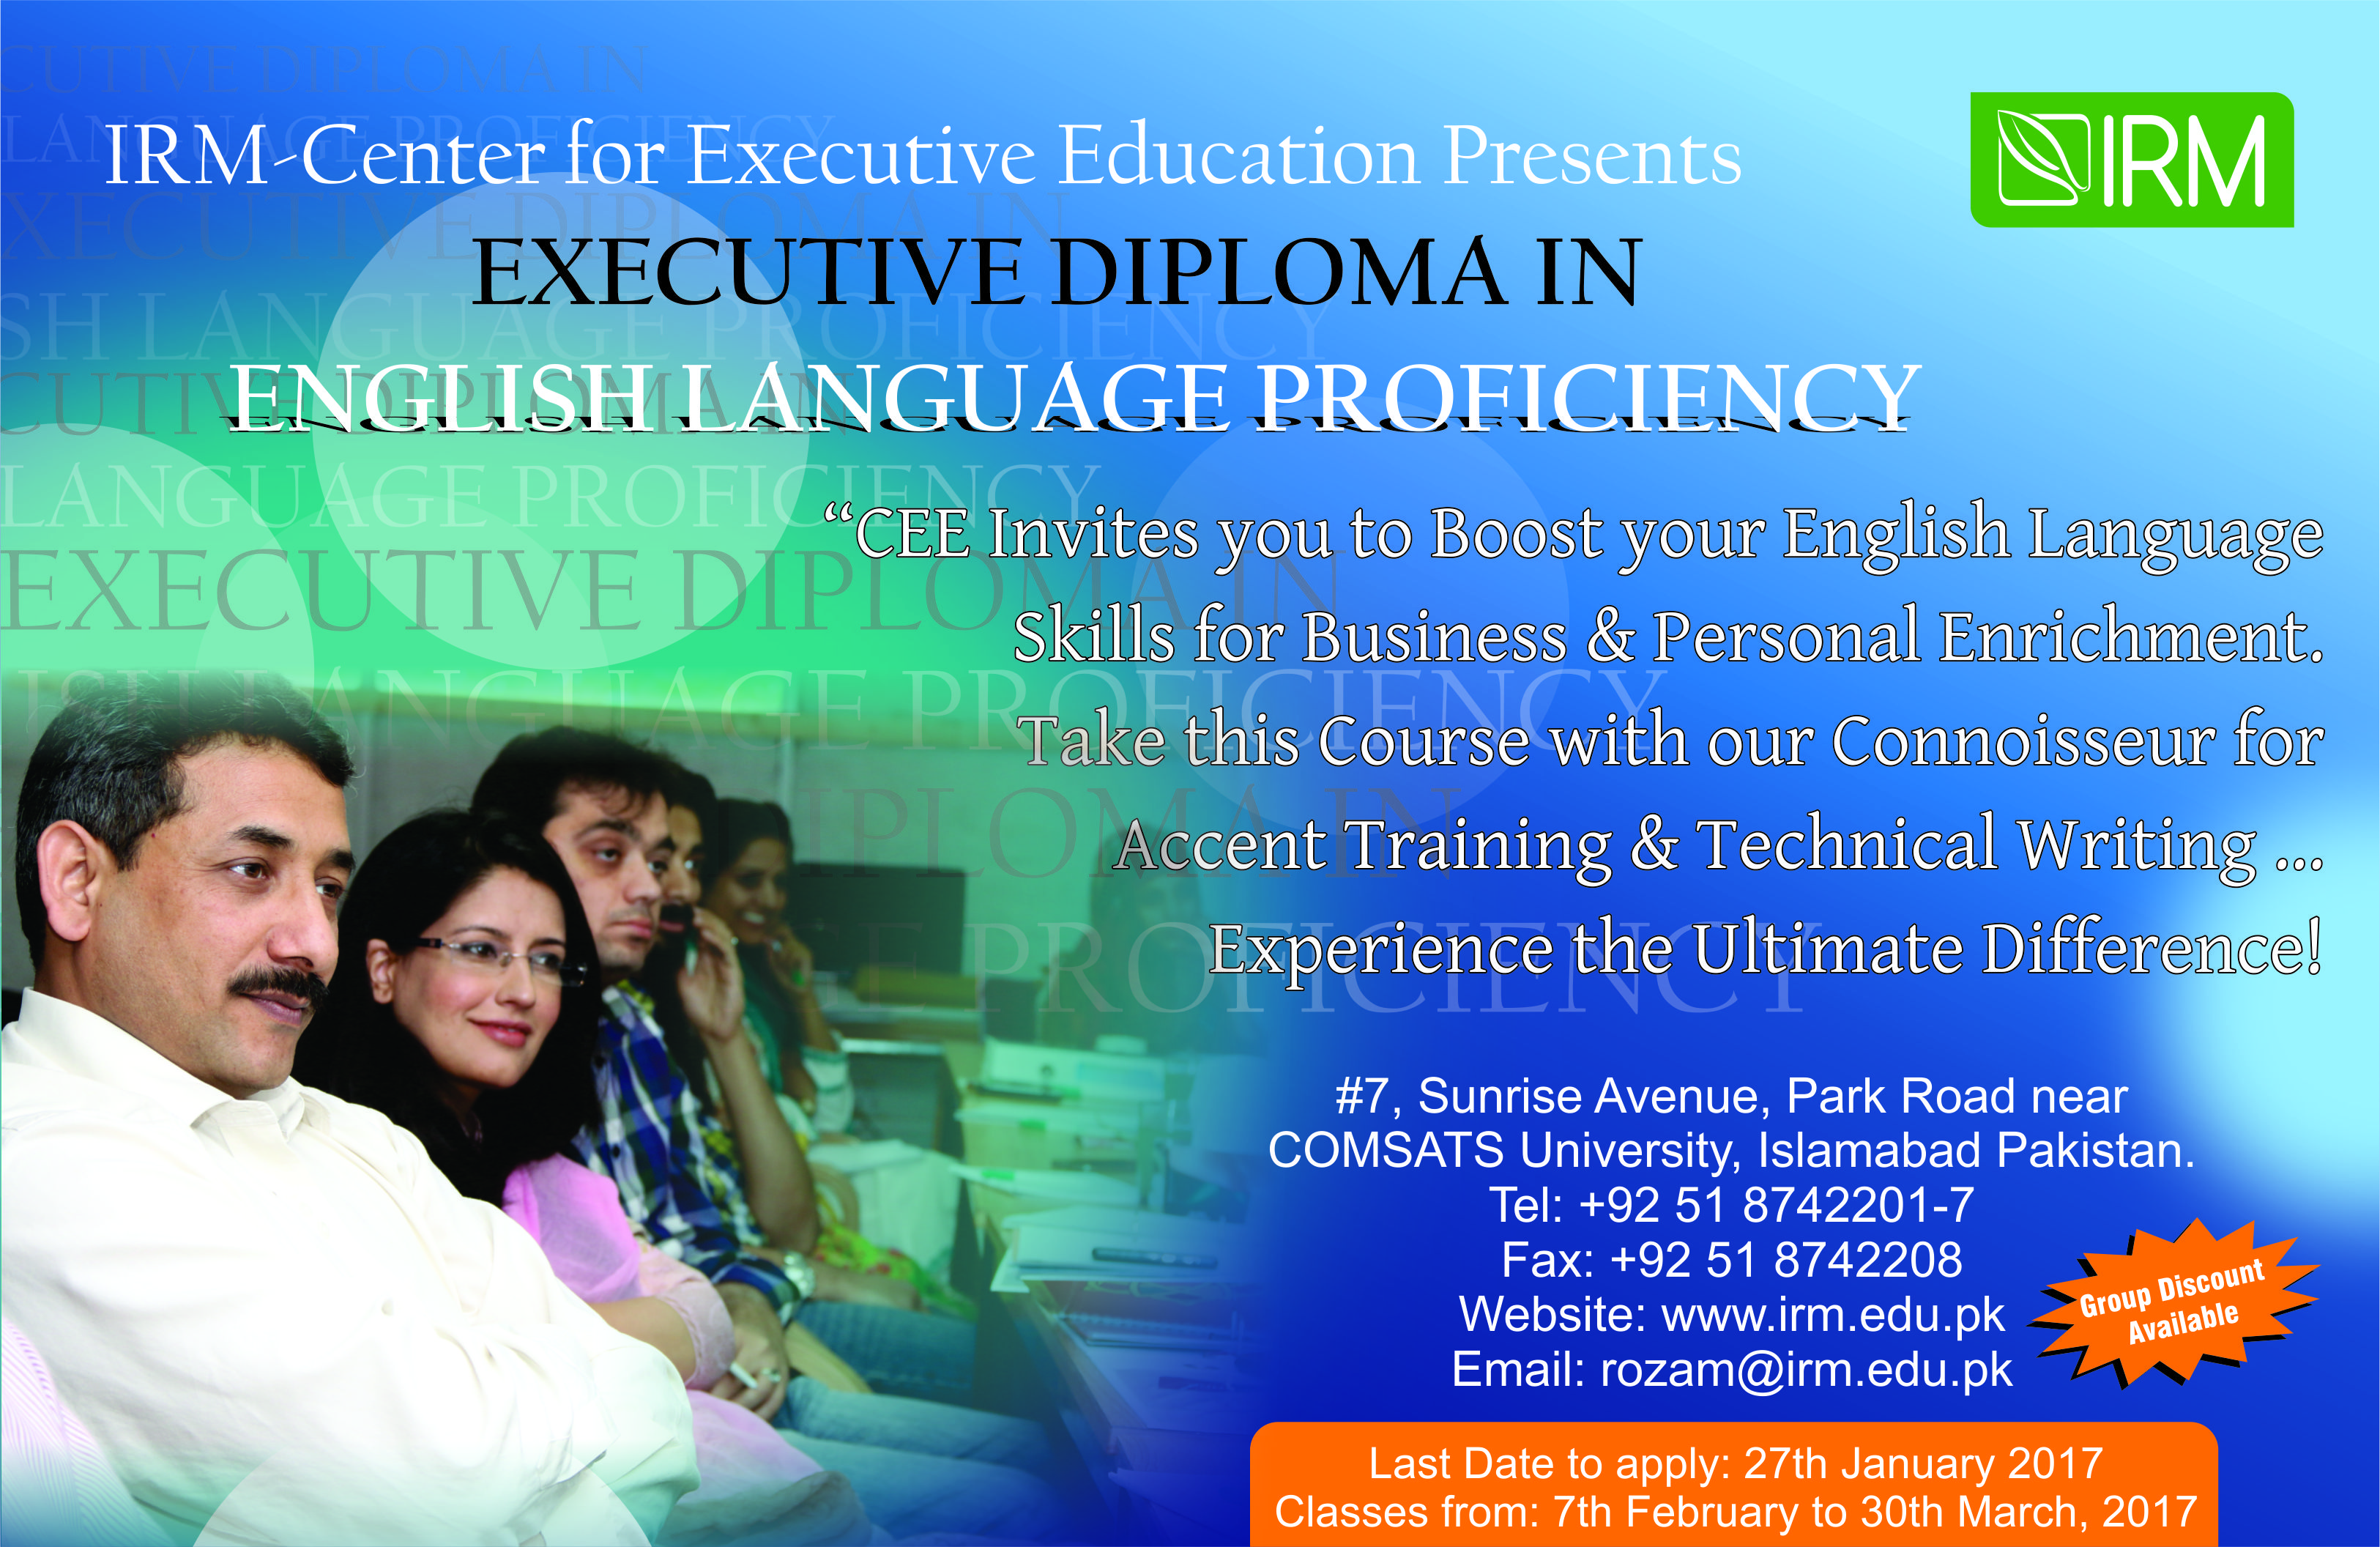 Executive Diploma in English Language Proficiency and Communication Skills Development